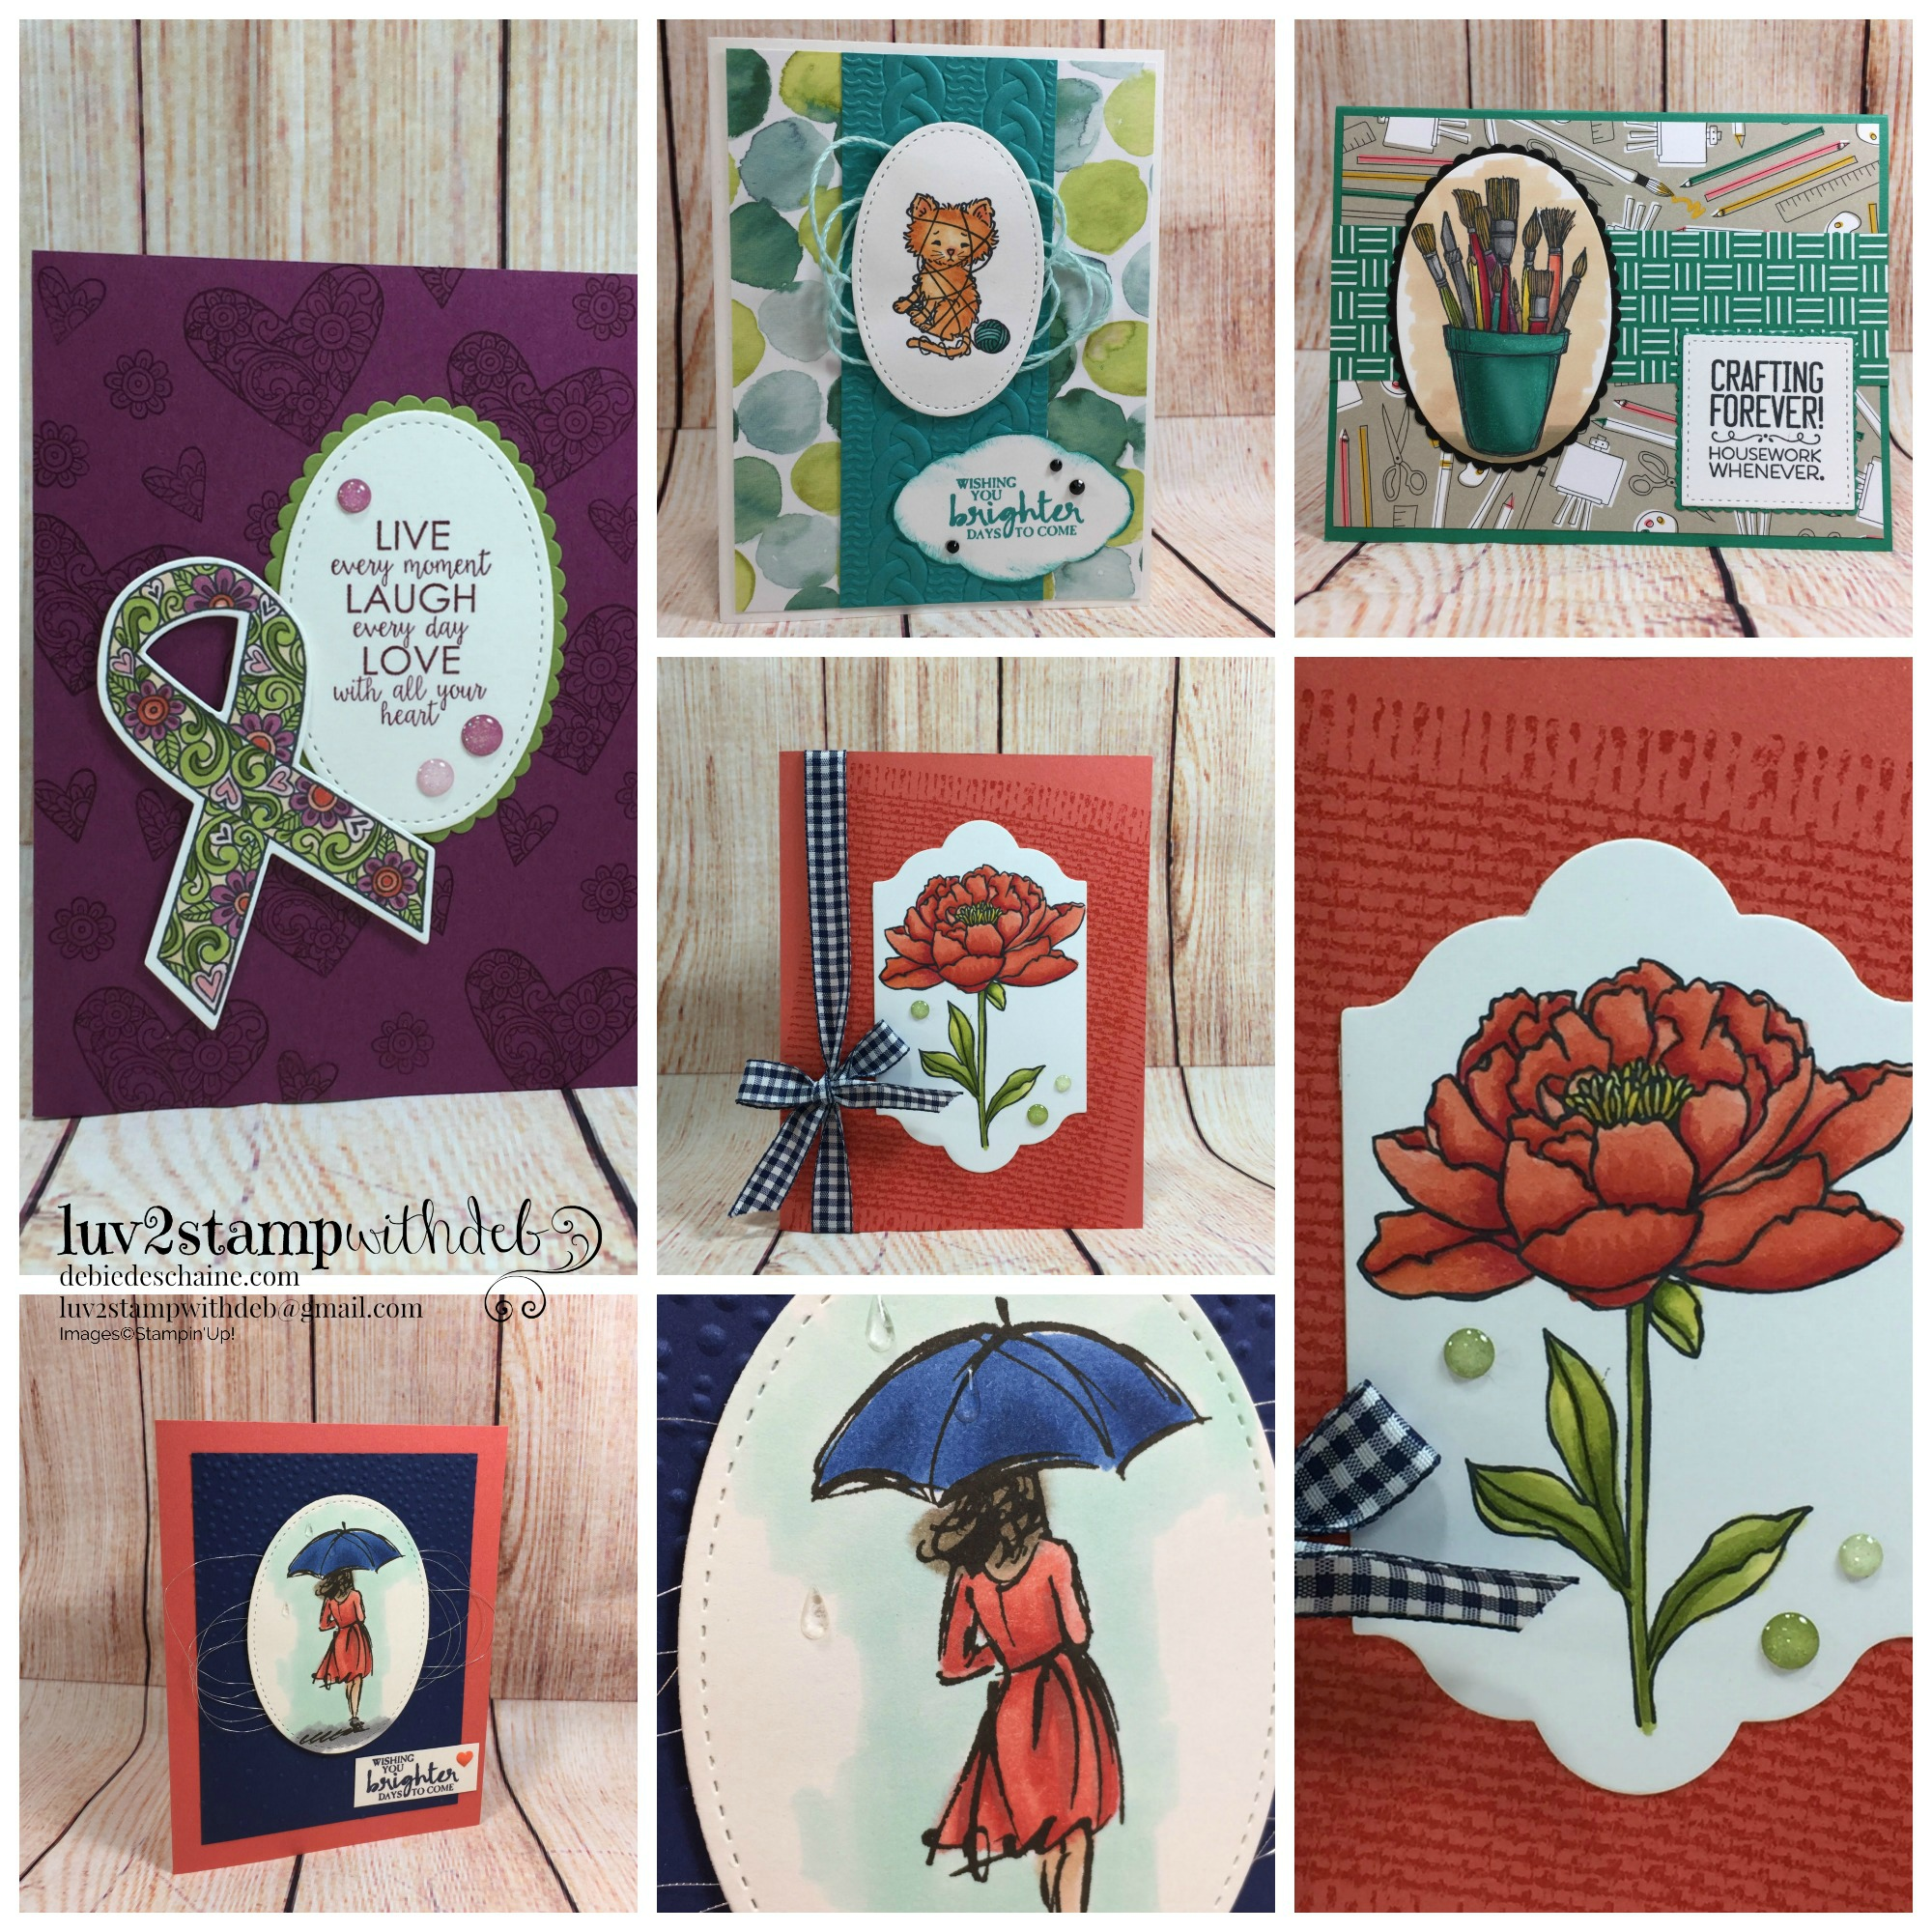 WMStampin Blends Collage.jpg